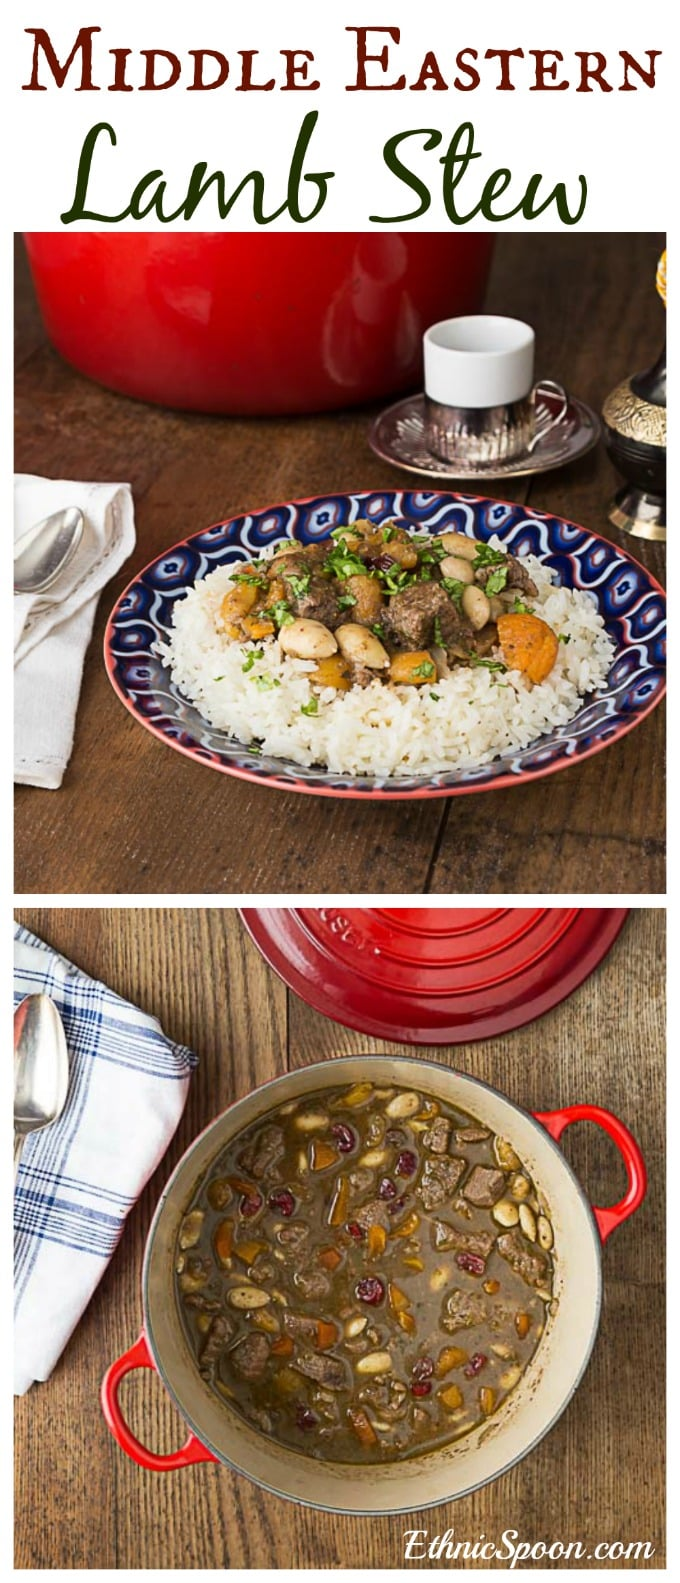 Middle Eastern style lamb stew with dried apricots, almonds and lightly infused with rosewater. A delicious combination of sweet and savory. | ethnicspoon.com